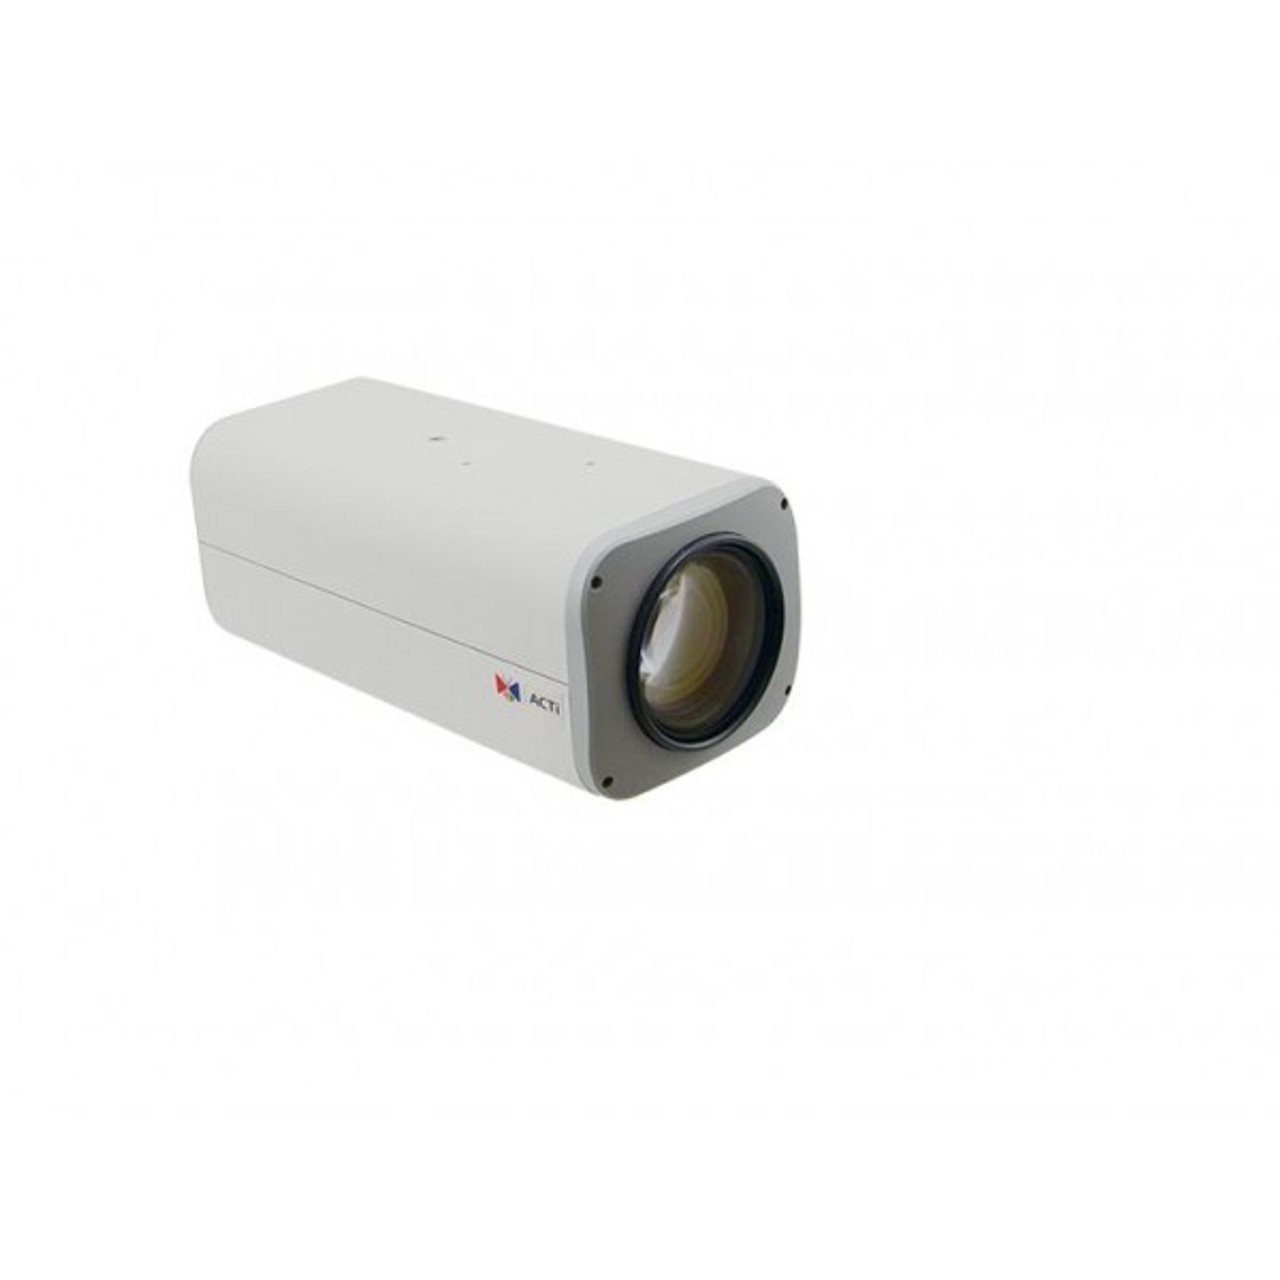 2MP Video Analytics Zoom Box Extreme Low Light Network Camera